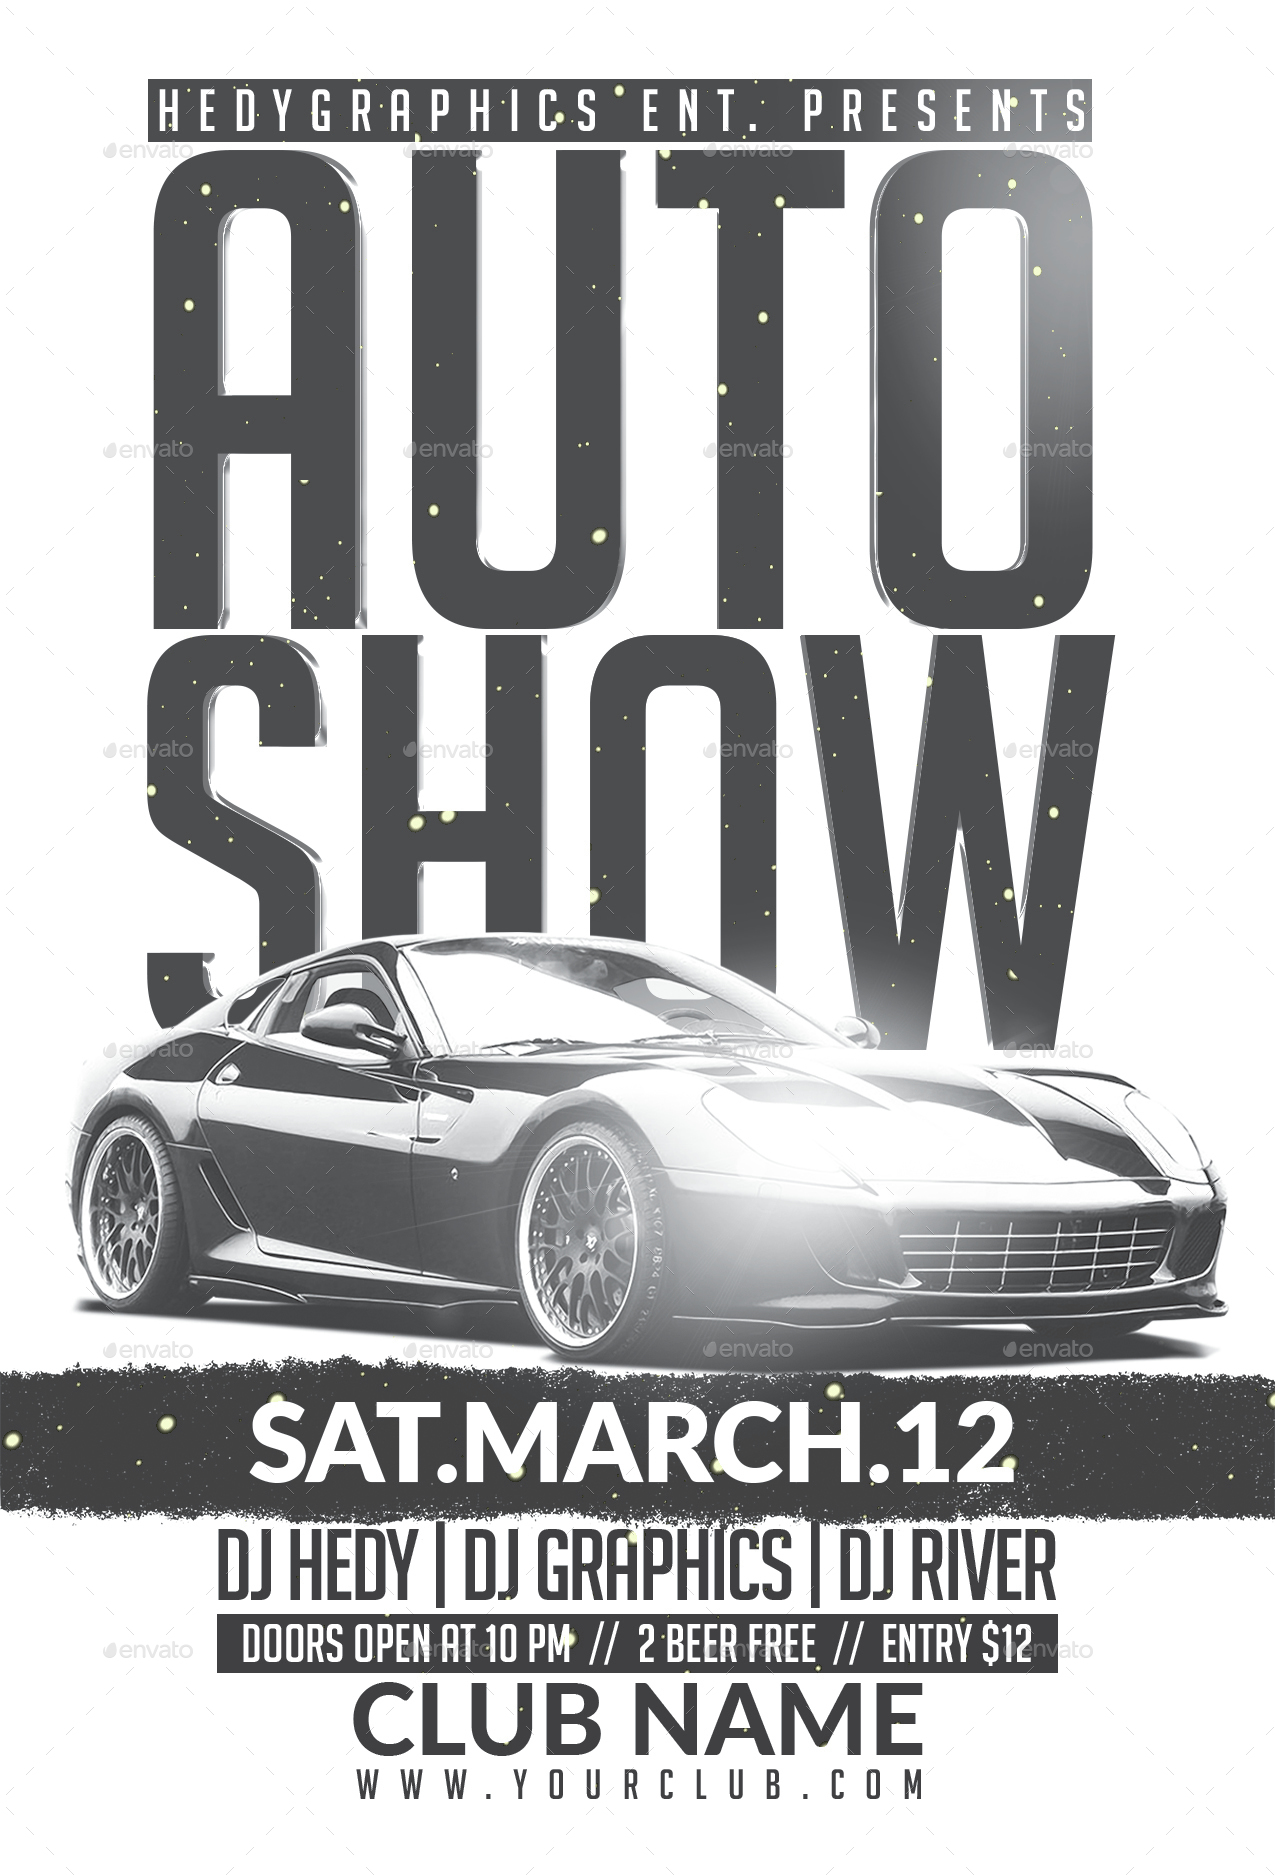 Car Show Flyer Template Goseqhtk - Car show flyer background